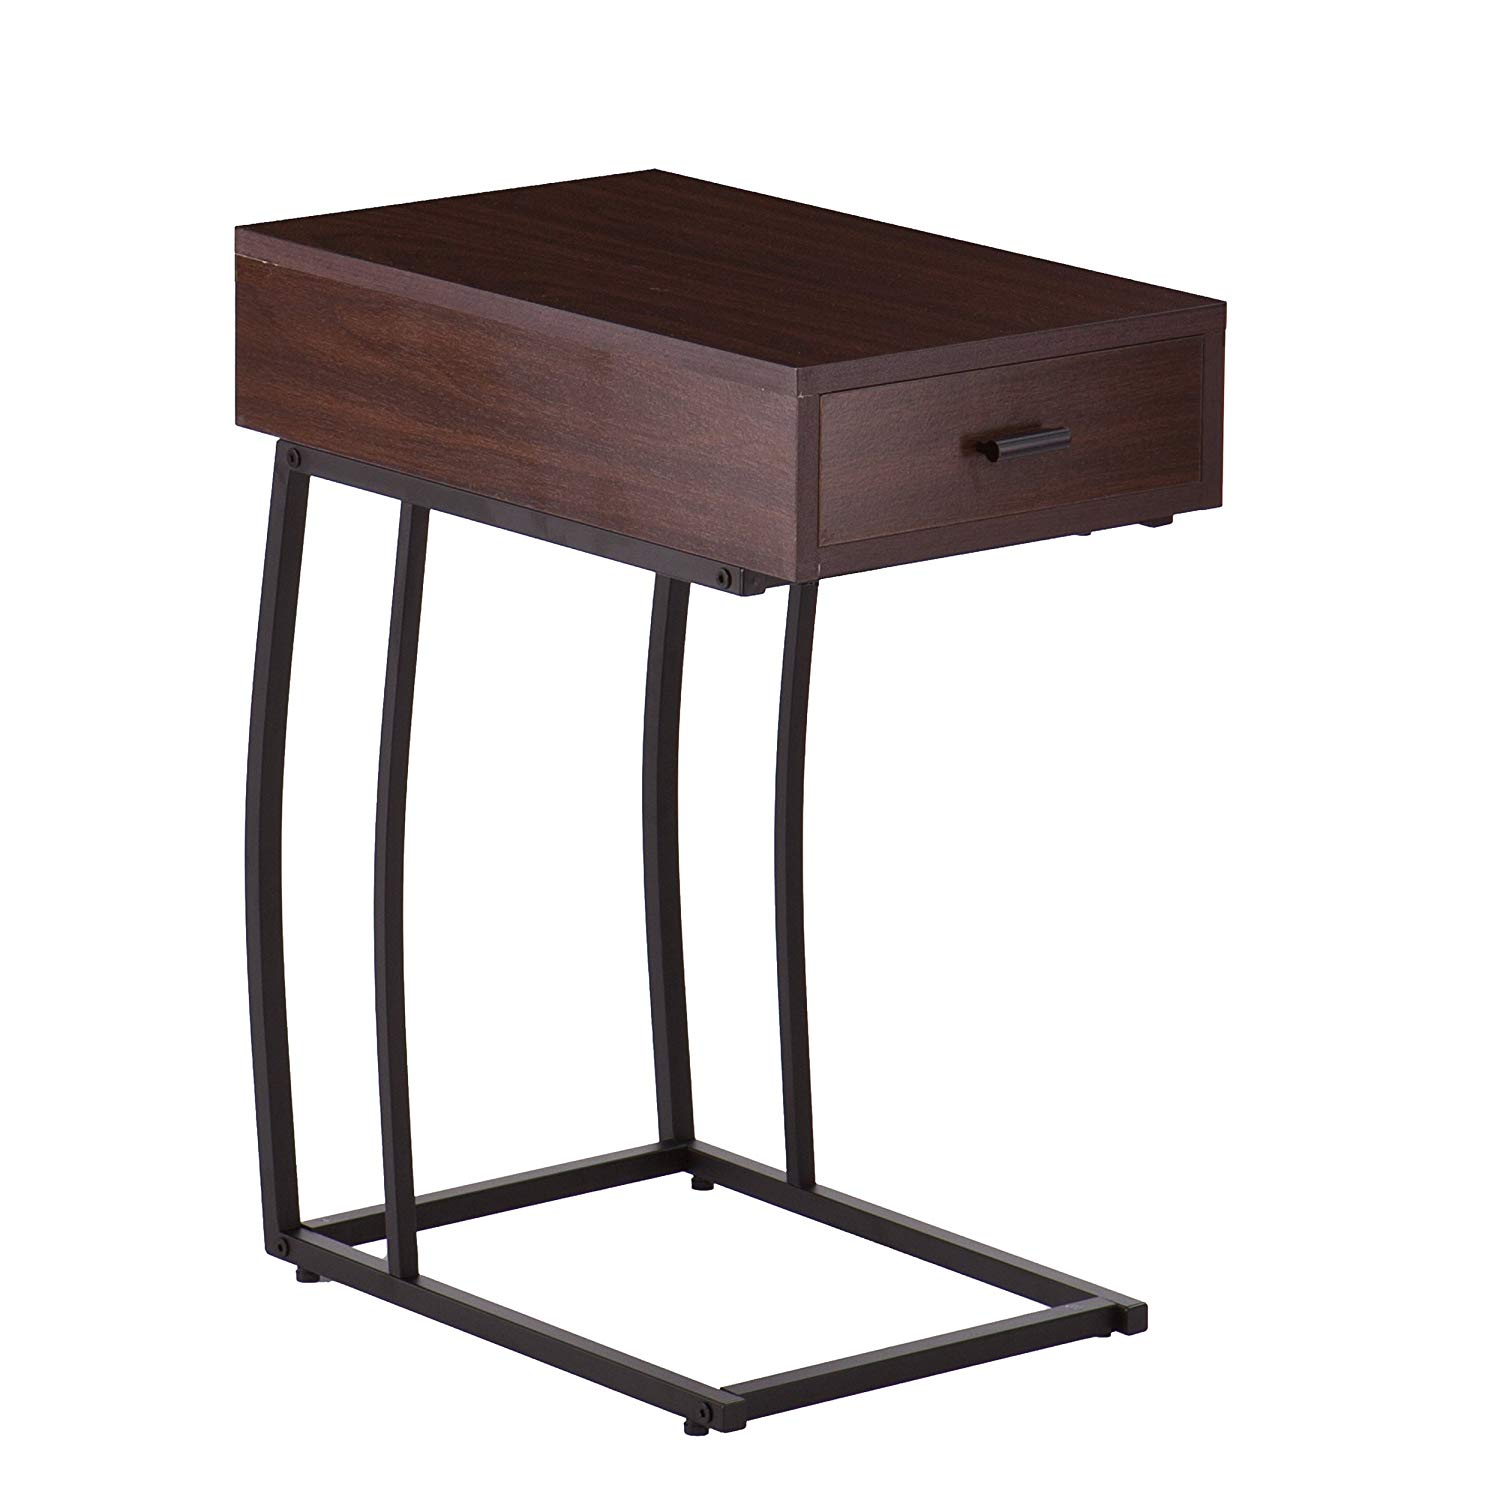 porten side table power usb kitchen dining accent with port small farmhouse reclaimed wood furniture ott coffee mission style plans end marble set tables wide oak threshold white